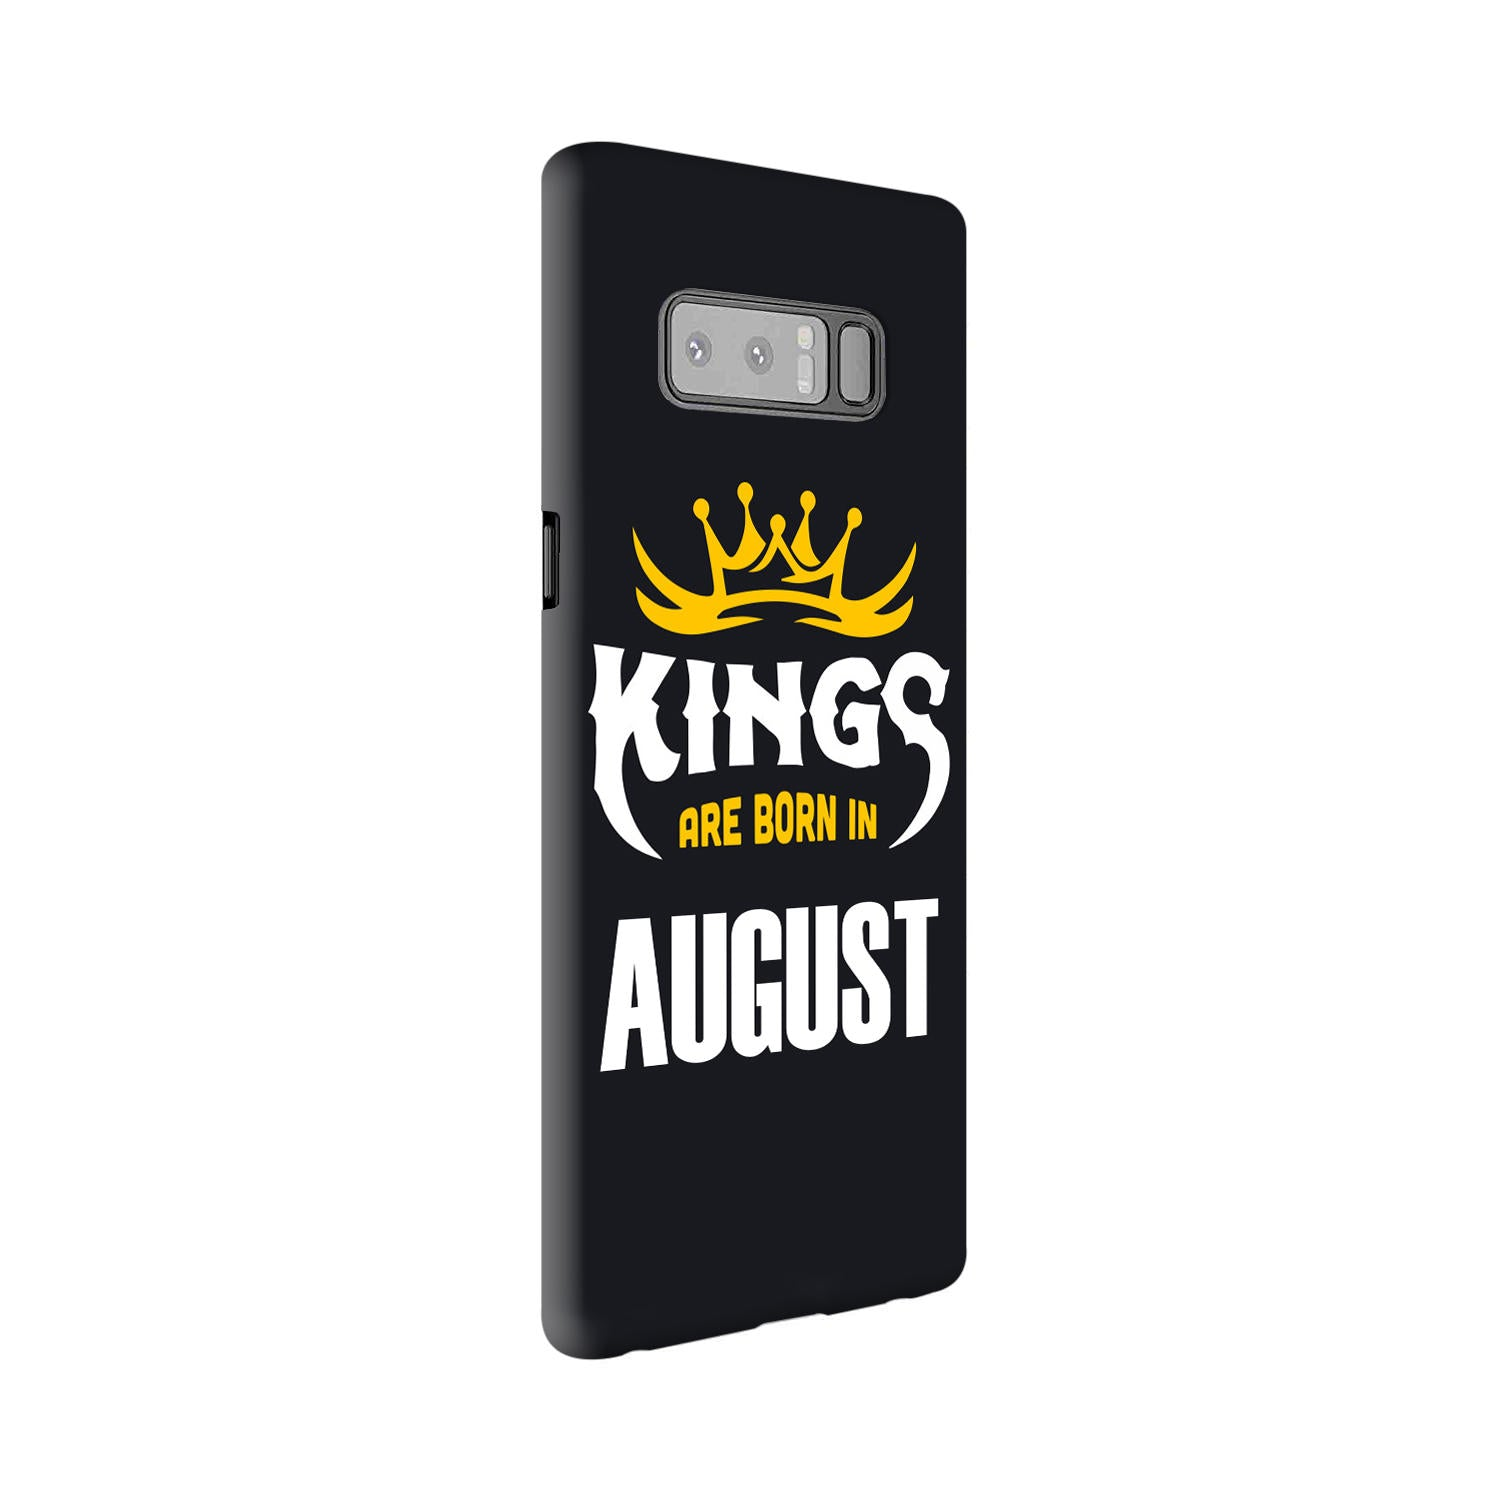 Kings August - Narcissist Samsung Galaxy Note 8 Mobile Cover Case - MADANYU